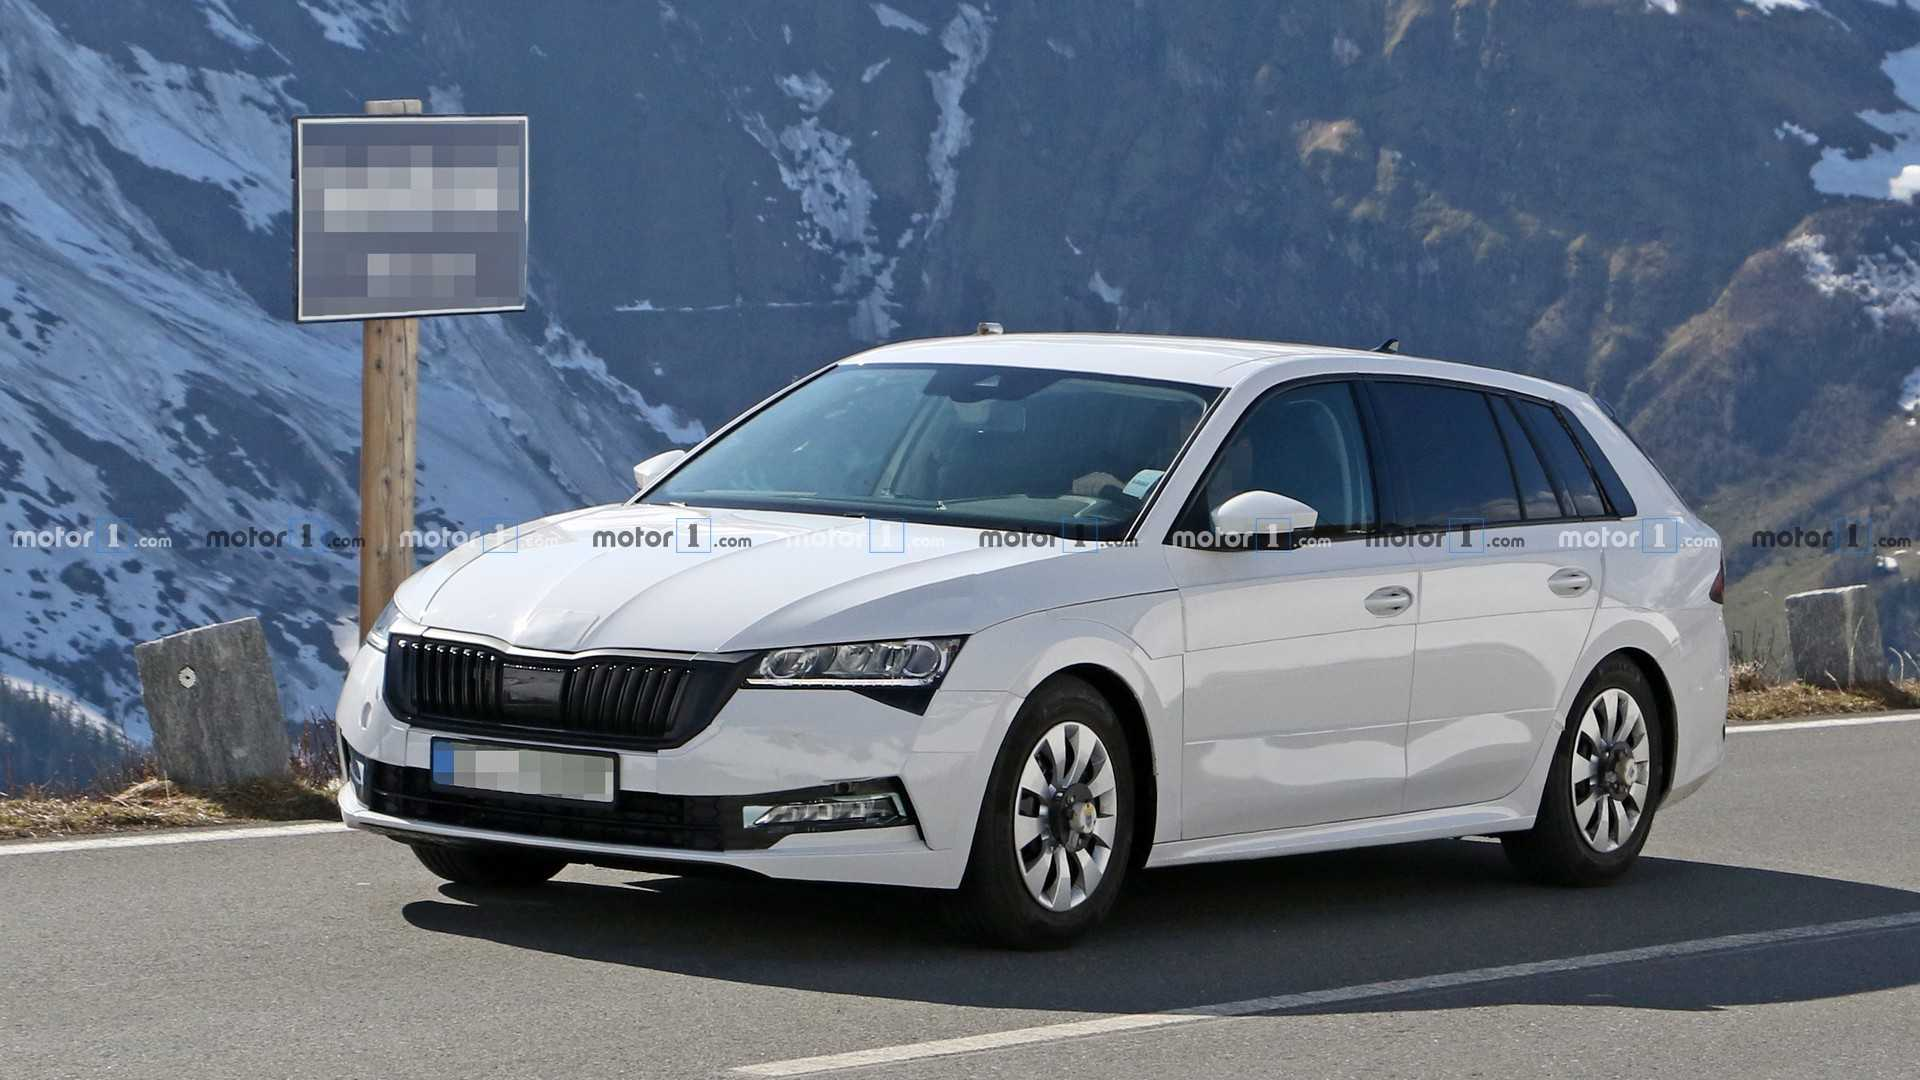 45 A 2020 The Spy Shots Skoda Superb Ratings